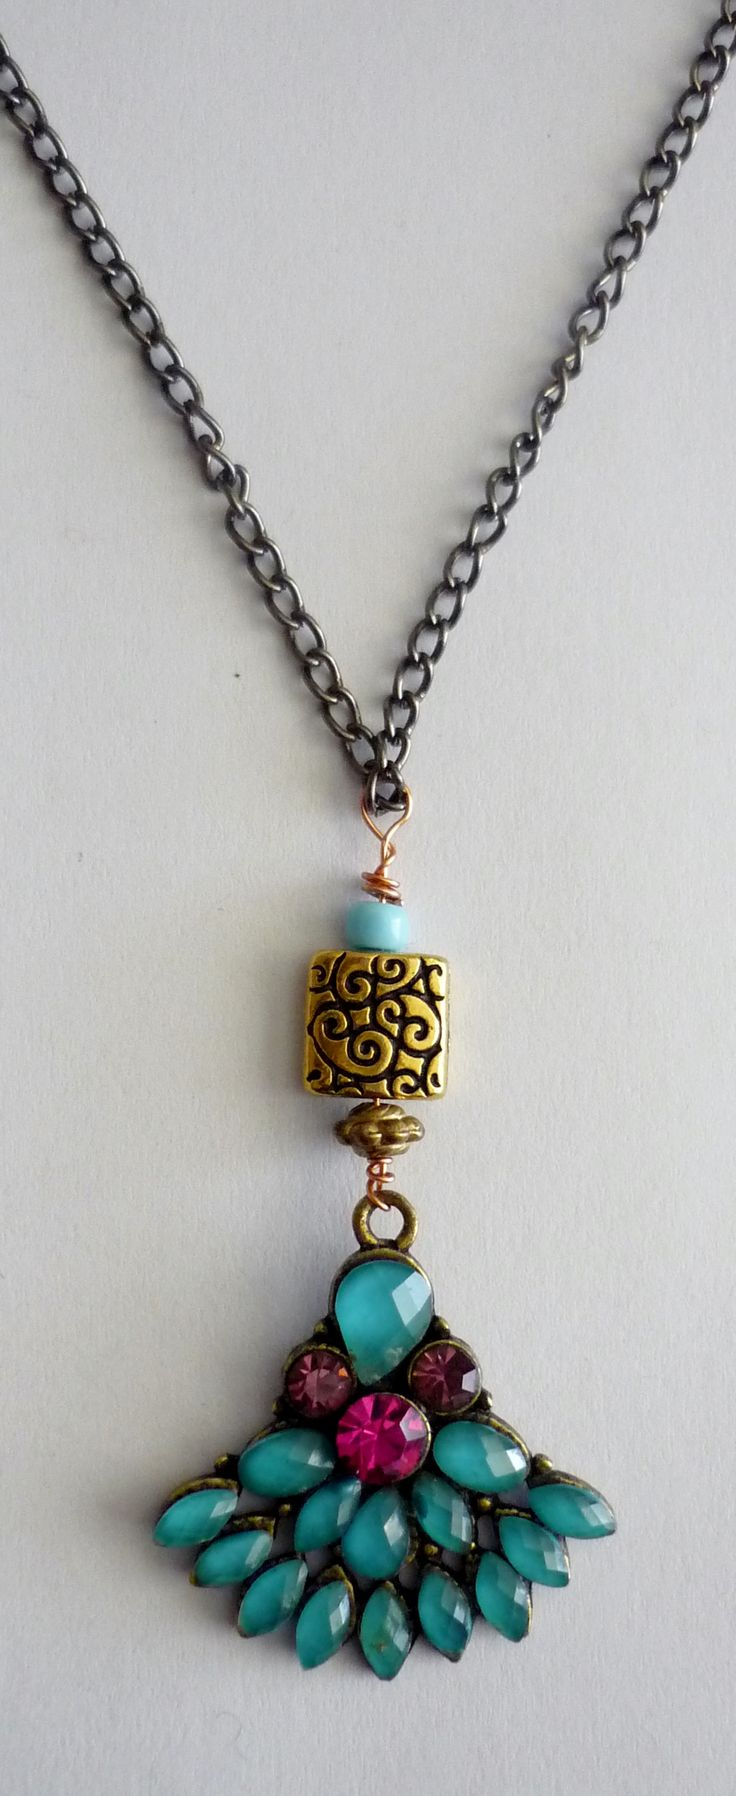 Amanda Harris Turquoise/pink beaded fan shaped pendent with small gold square connector on fine nickel chain